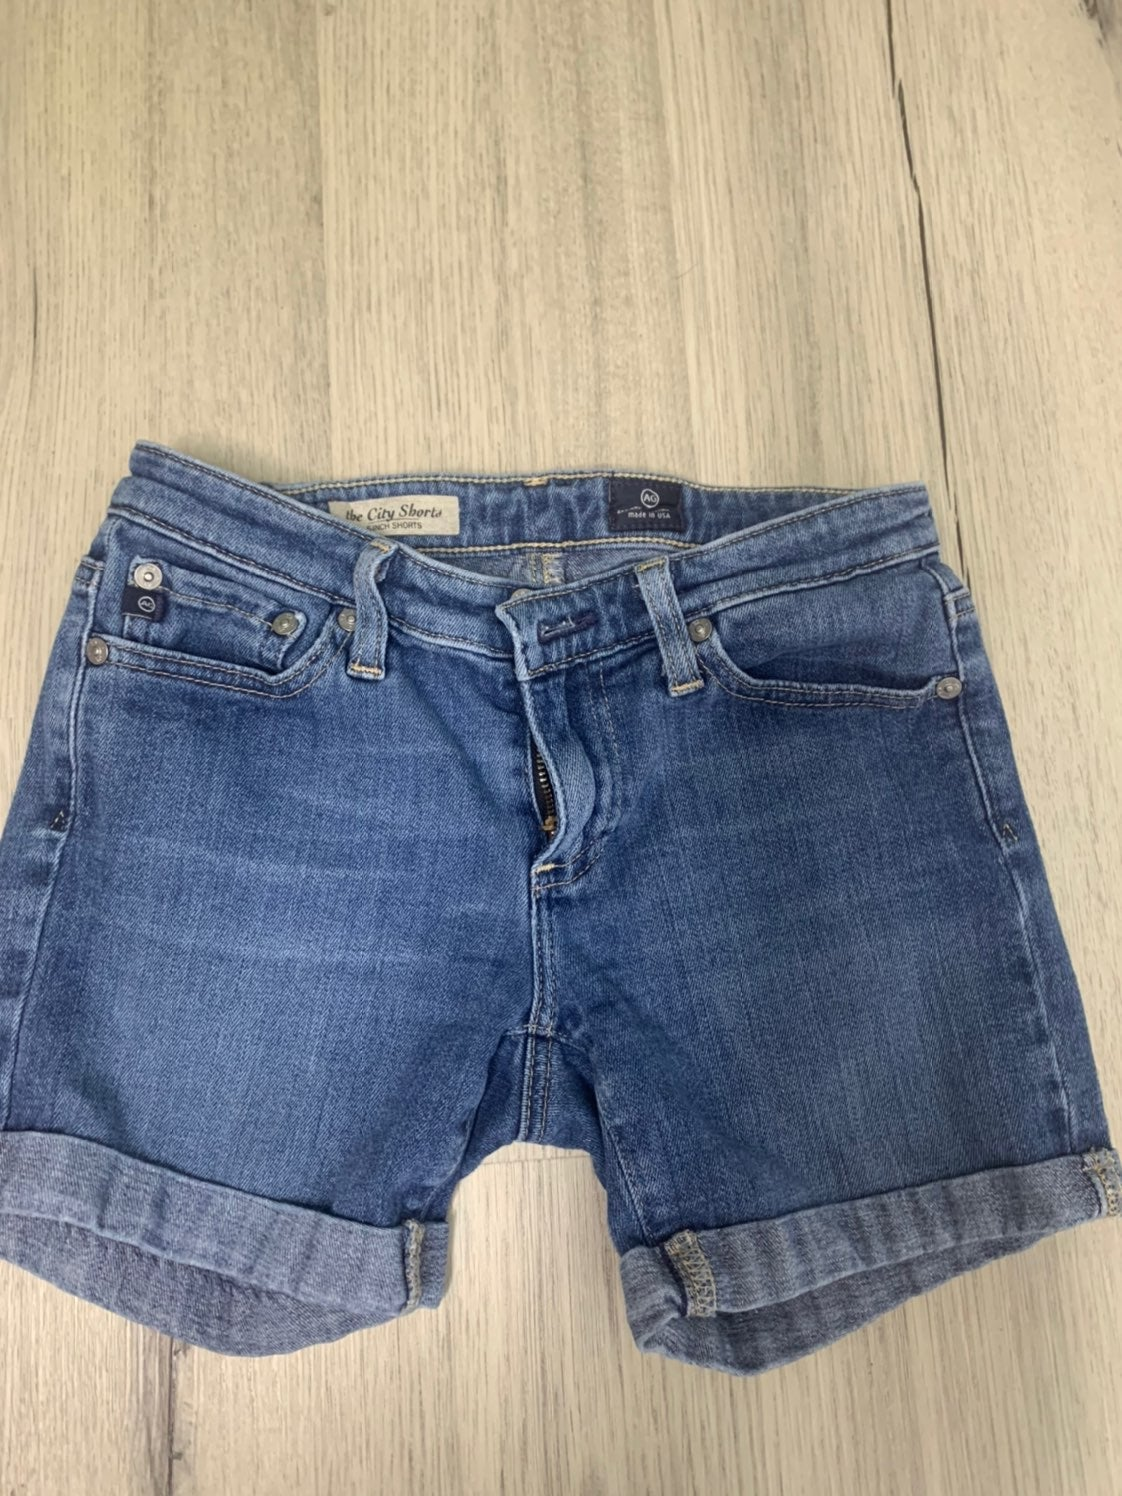 Ag Jean city Shorts